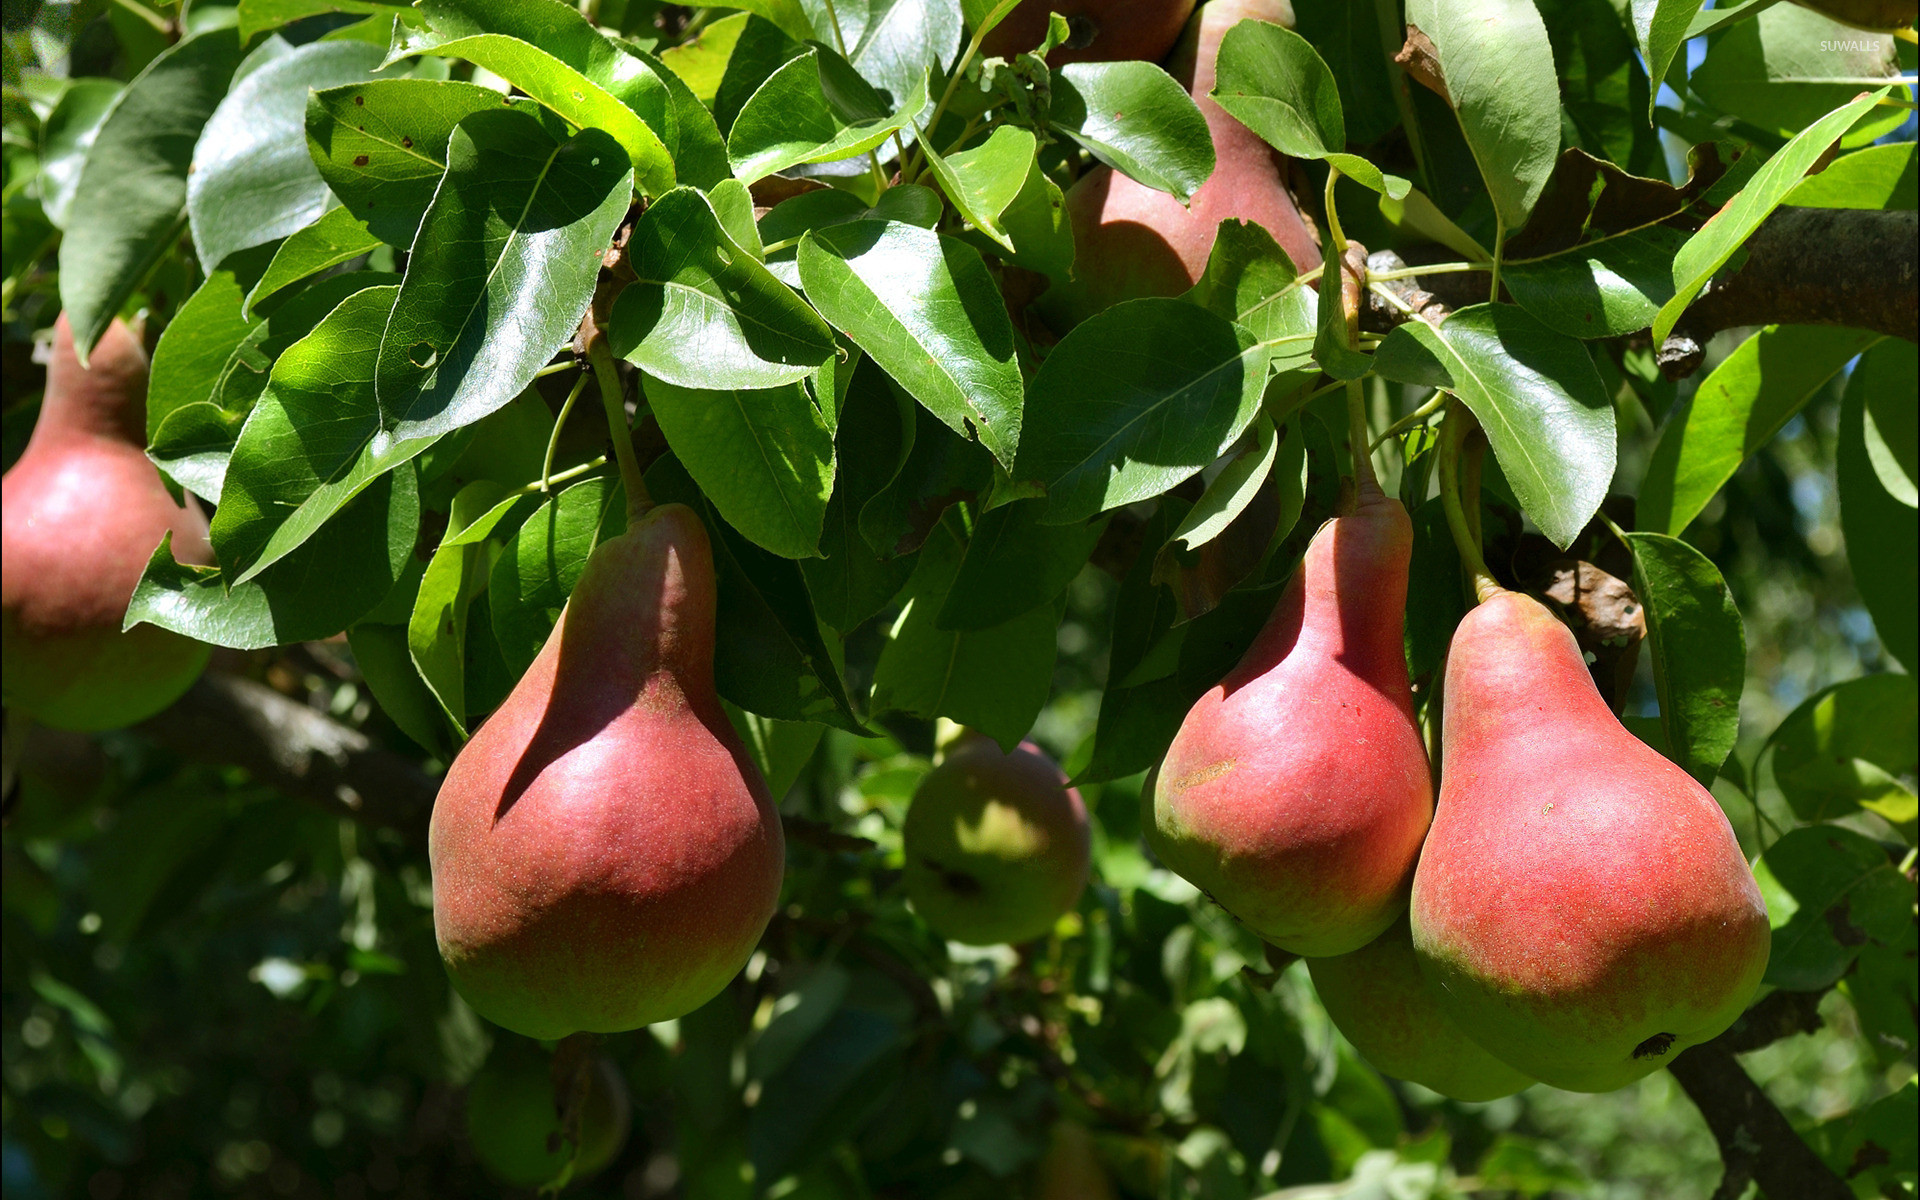 Res: 1920x1200, Pears in the tree wallpaper